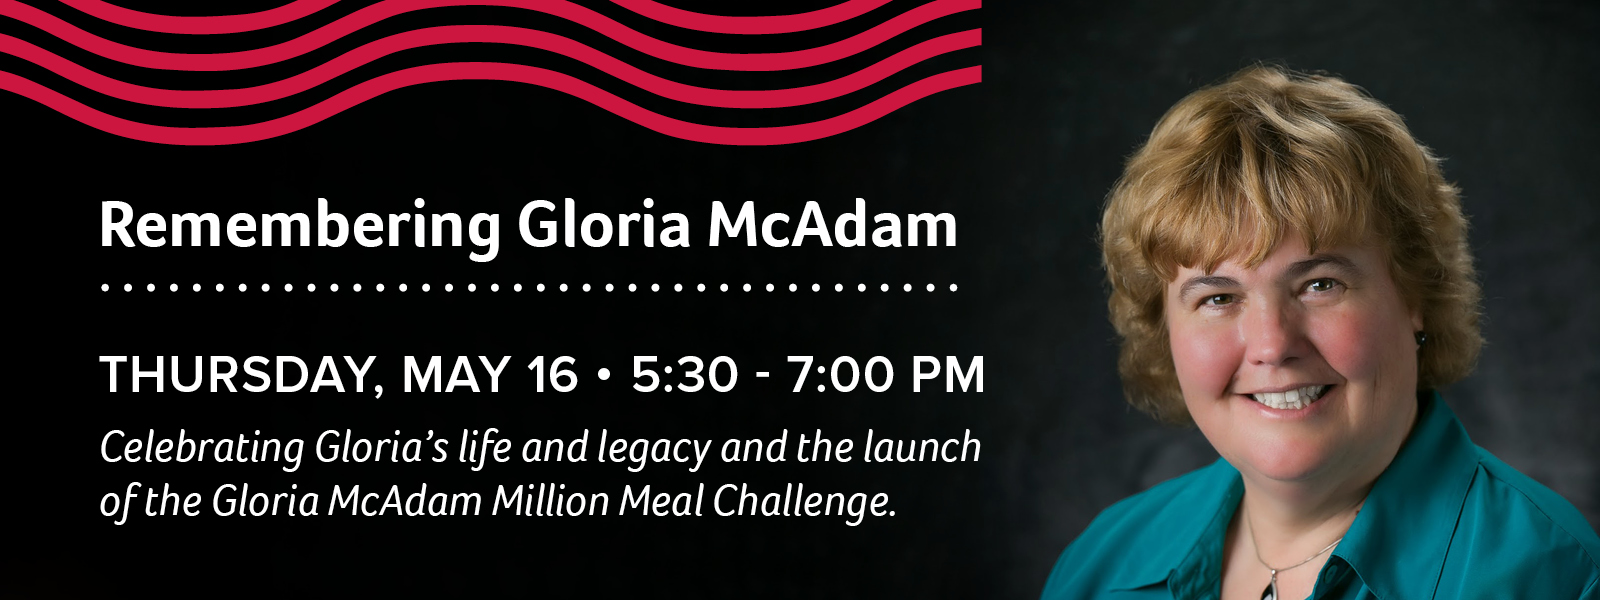 Gloria McAdam Million Meal Challenge Slider 2